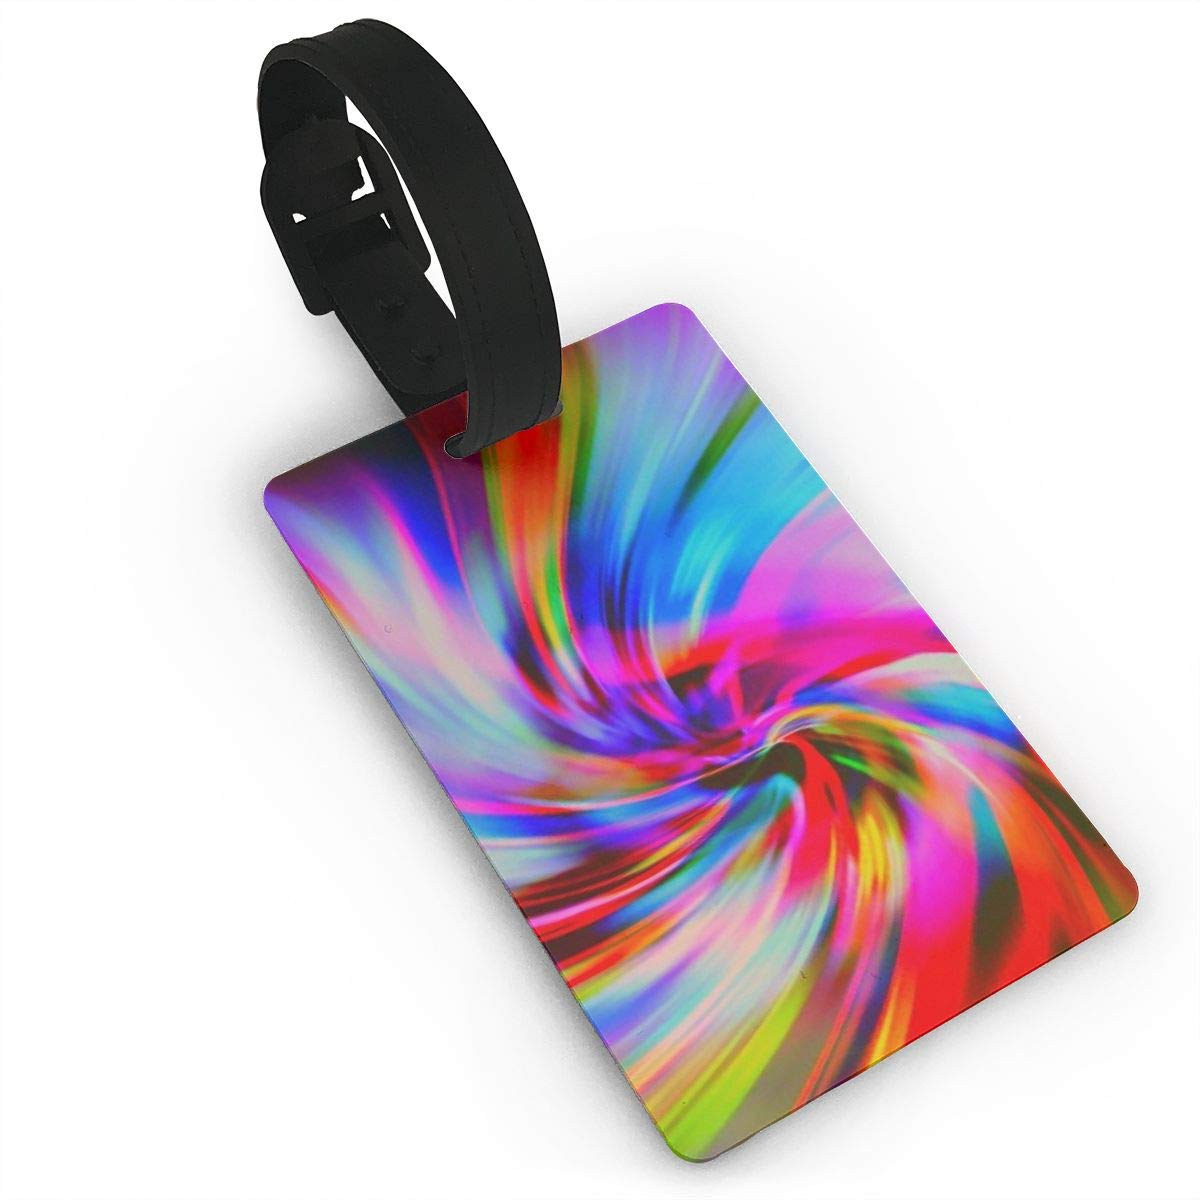 2 Pack Luggage Tags Psychedelic Art Swirl Travel Tags For Travel Tags Accessories